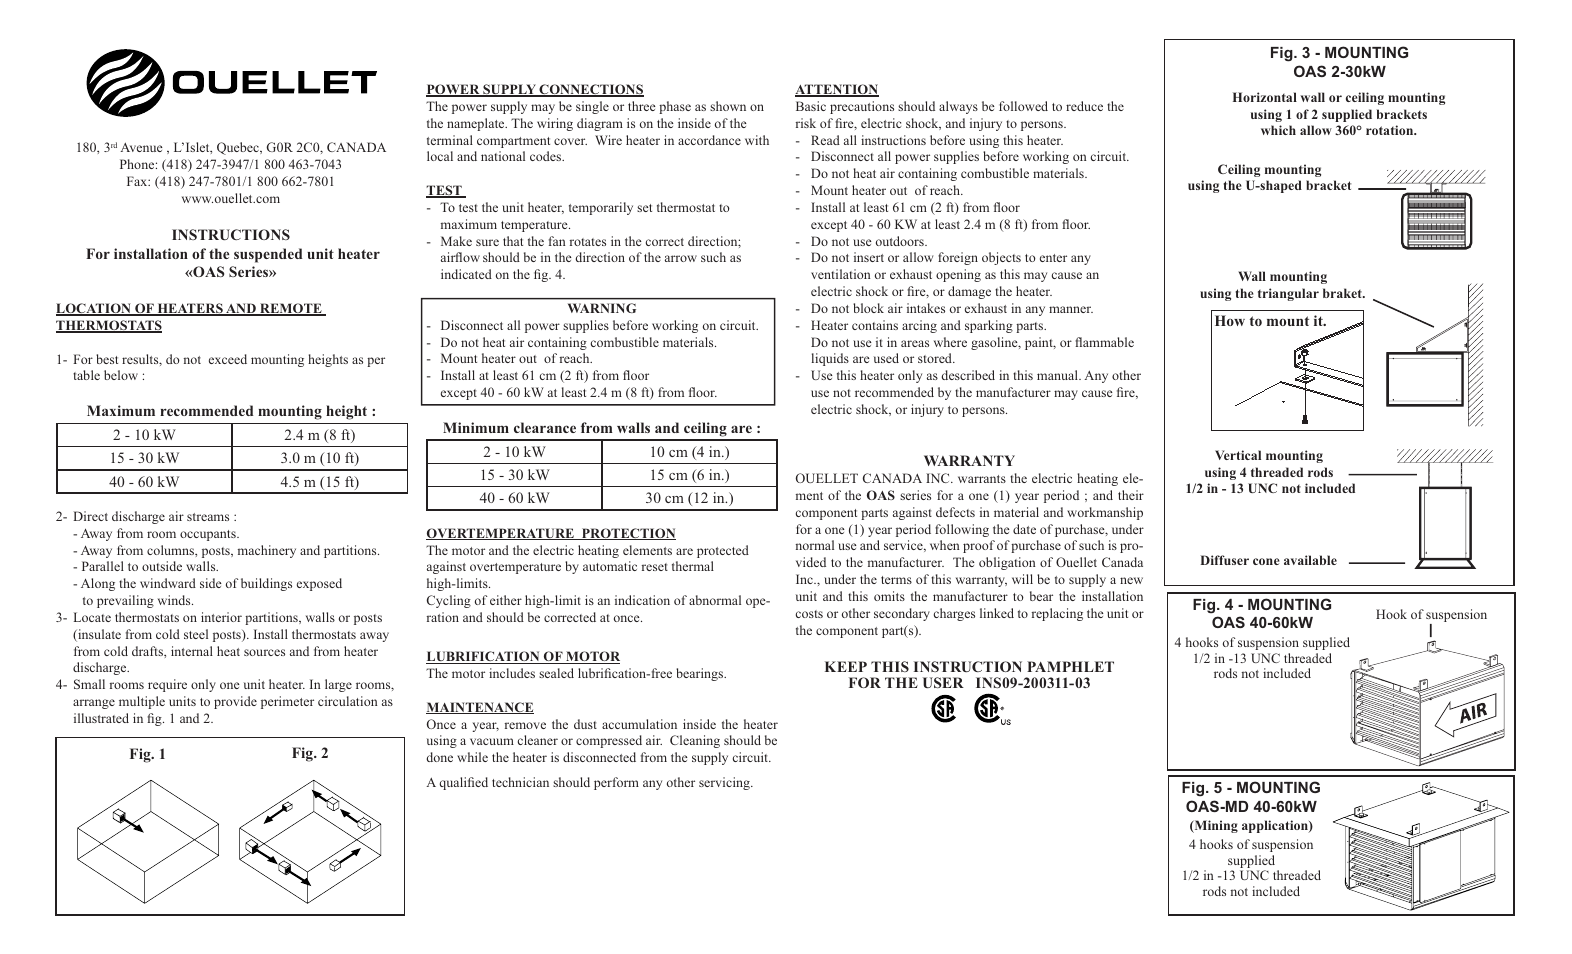 Ouellet Oas User Manual